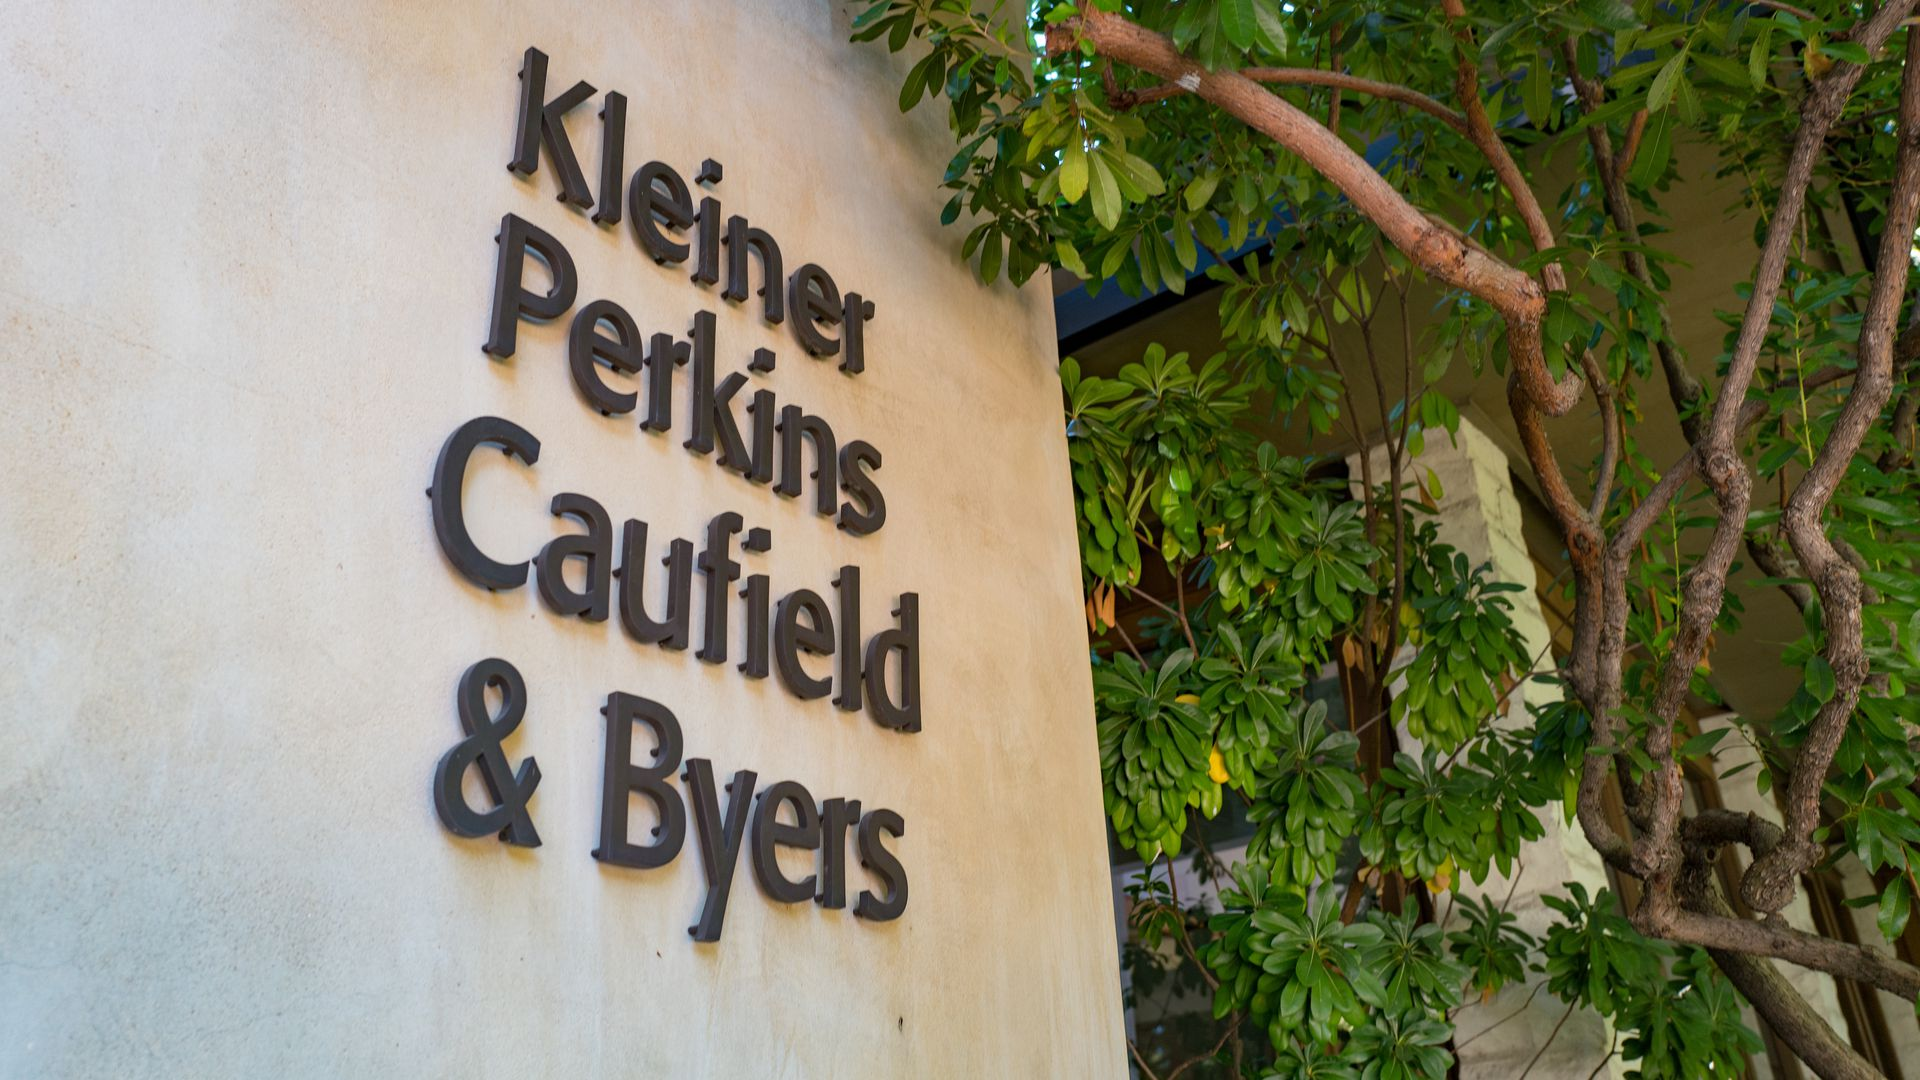 Signage at headquarters of venture capital investment firm Kleiner Perkins Caufield Byers